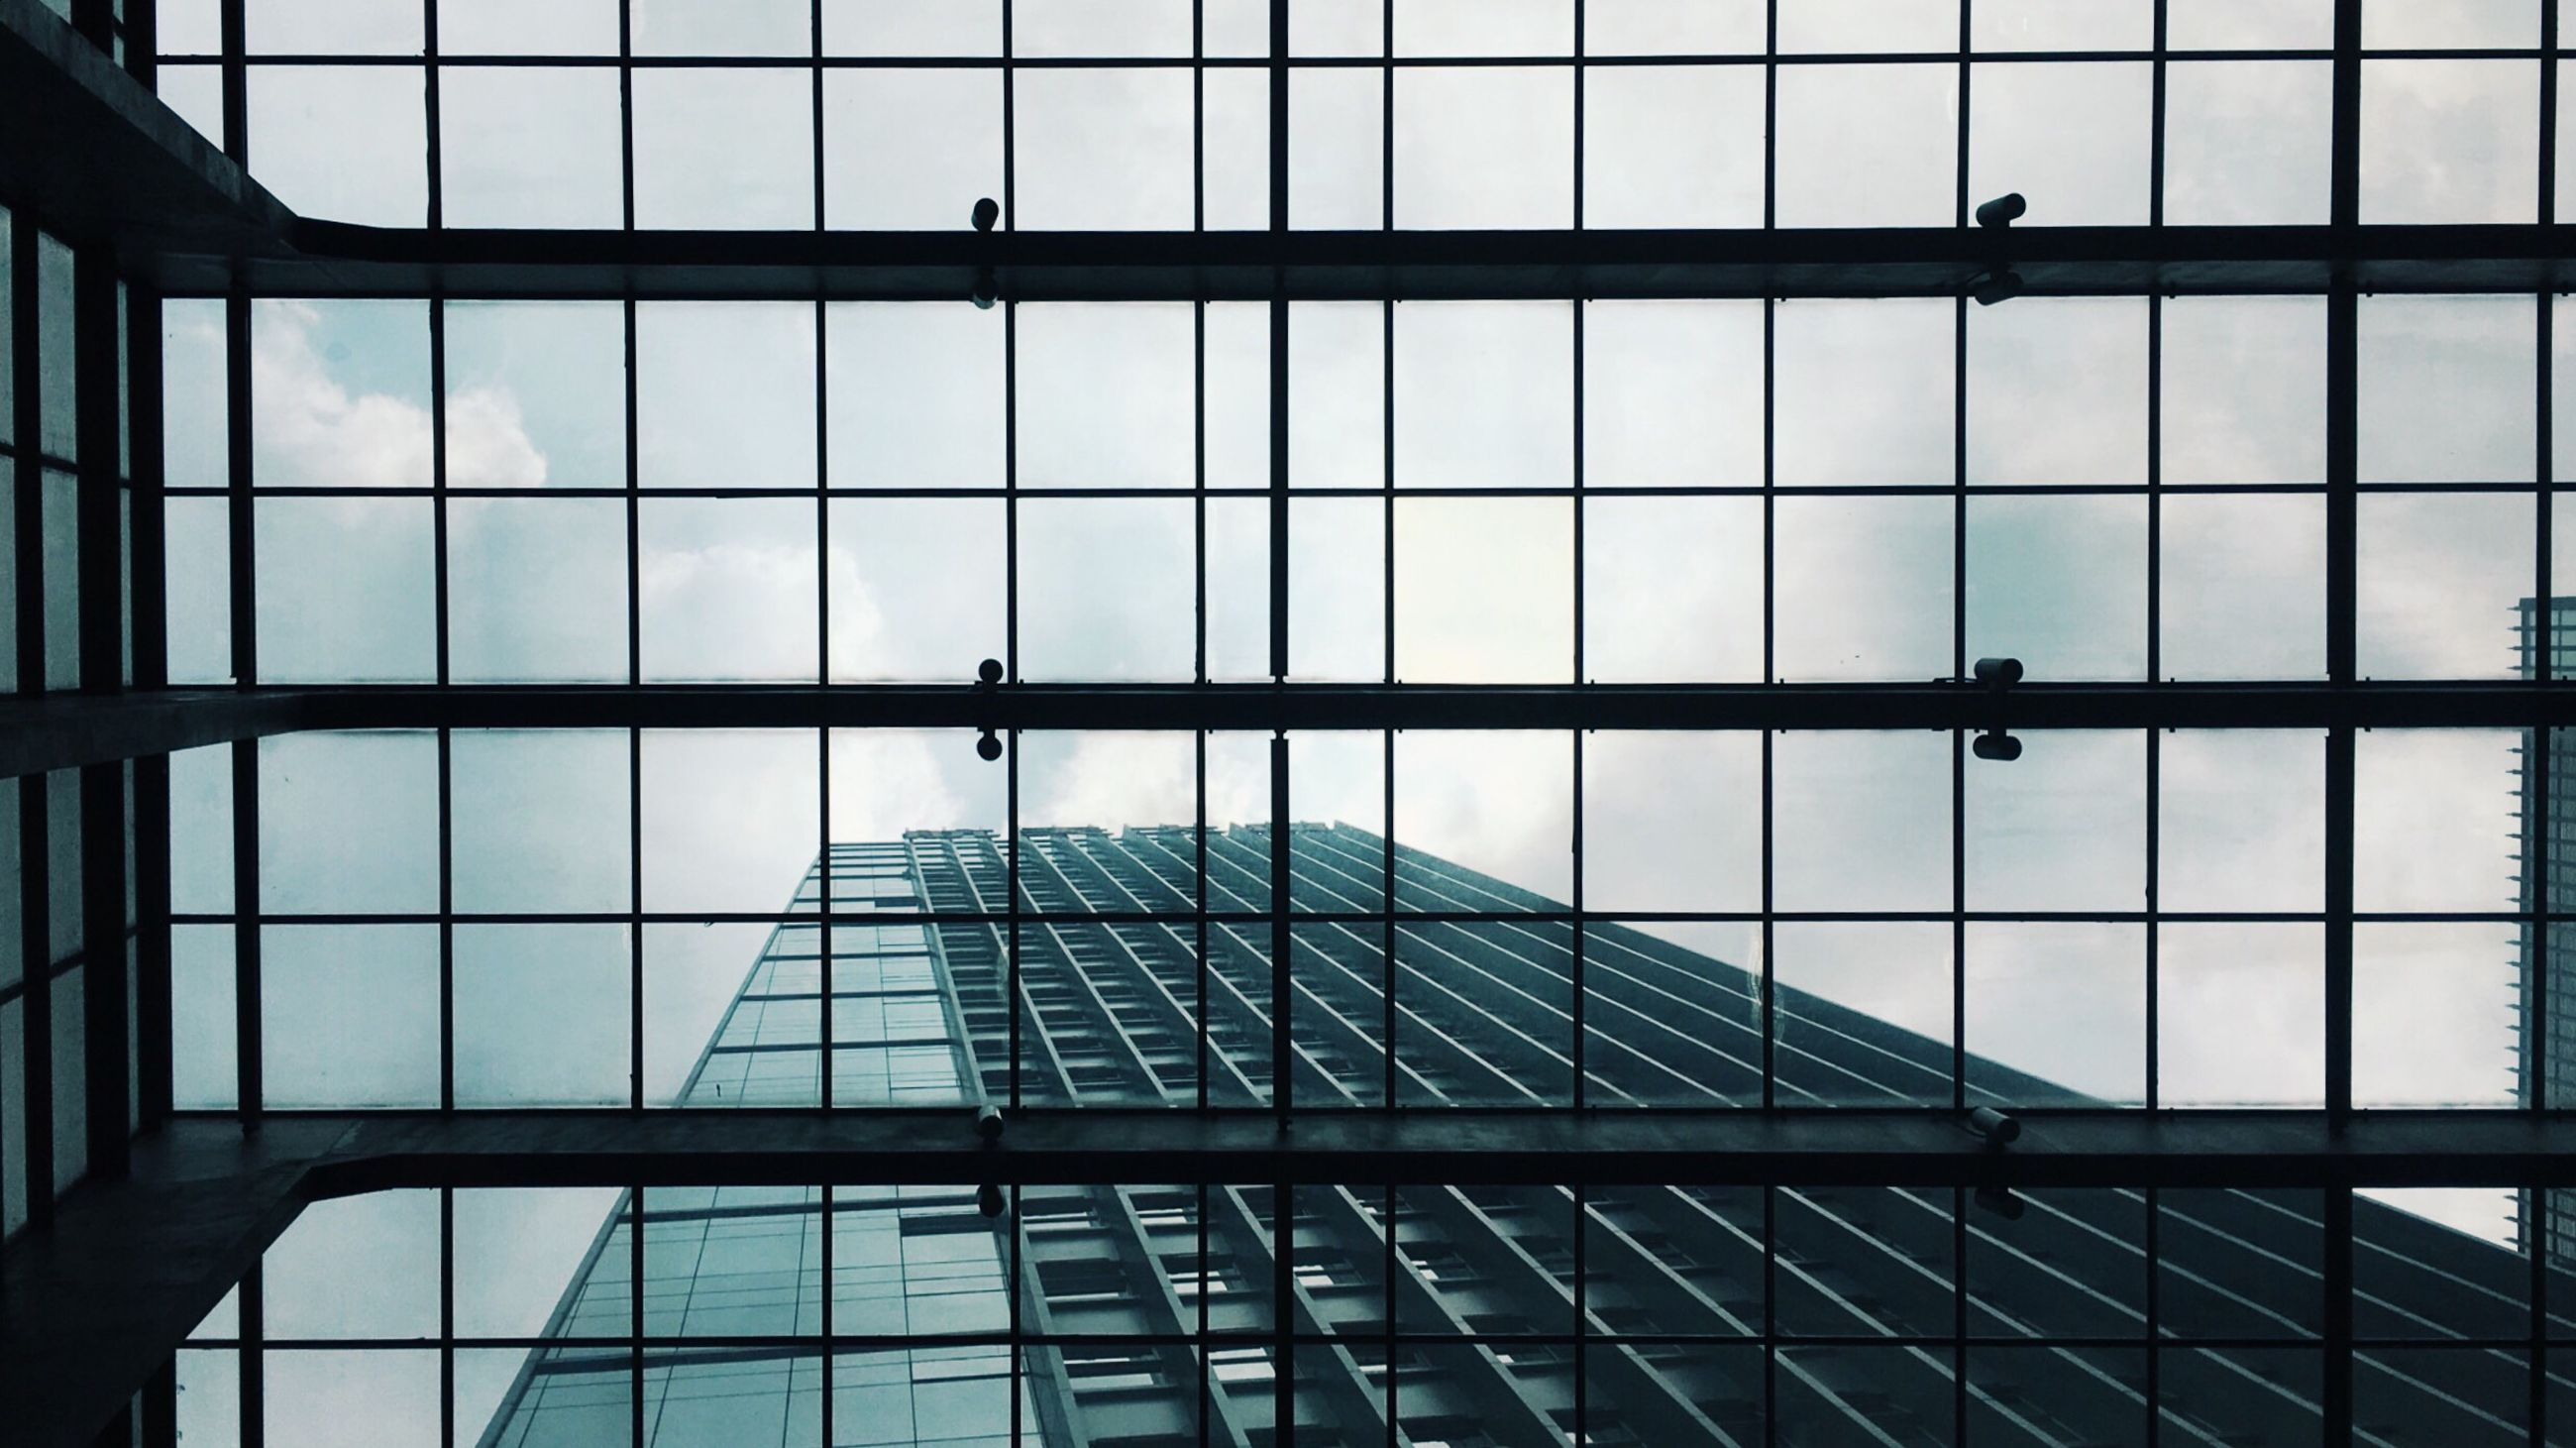 architecture, indoors, glass - material, built structure, low angle view, transparent, square shape, modern, geometric shape, ceiling, sky, directly below, skylight, full frame, office building, day, architectural feature, repetition, cloud - sky, skyscraper, no people